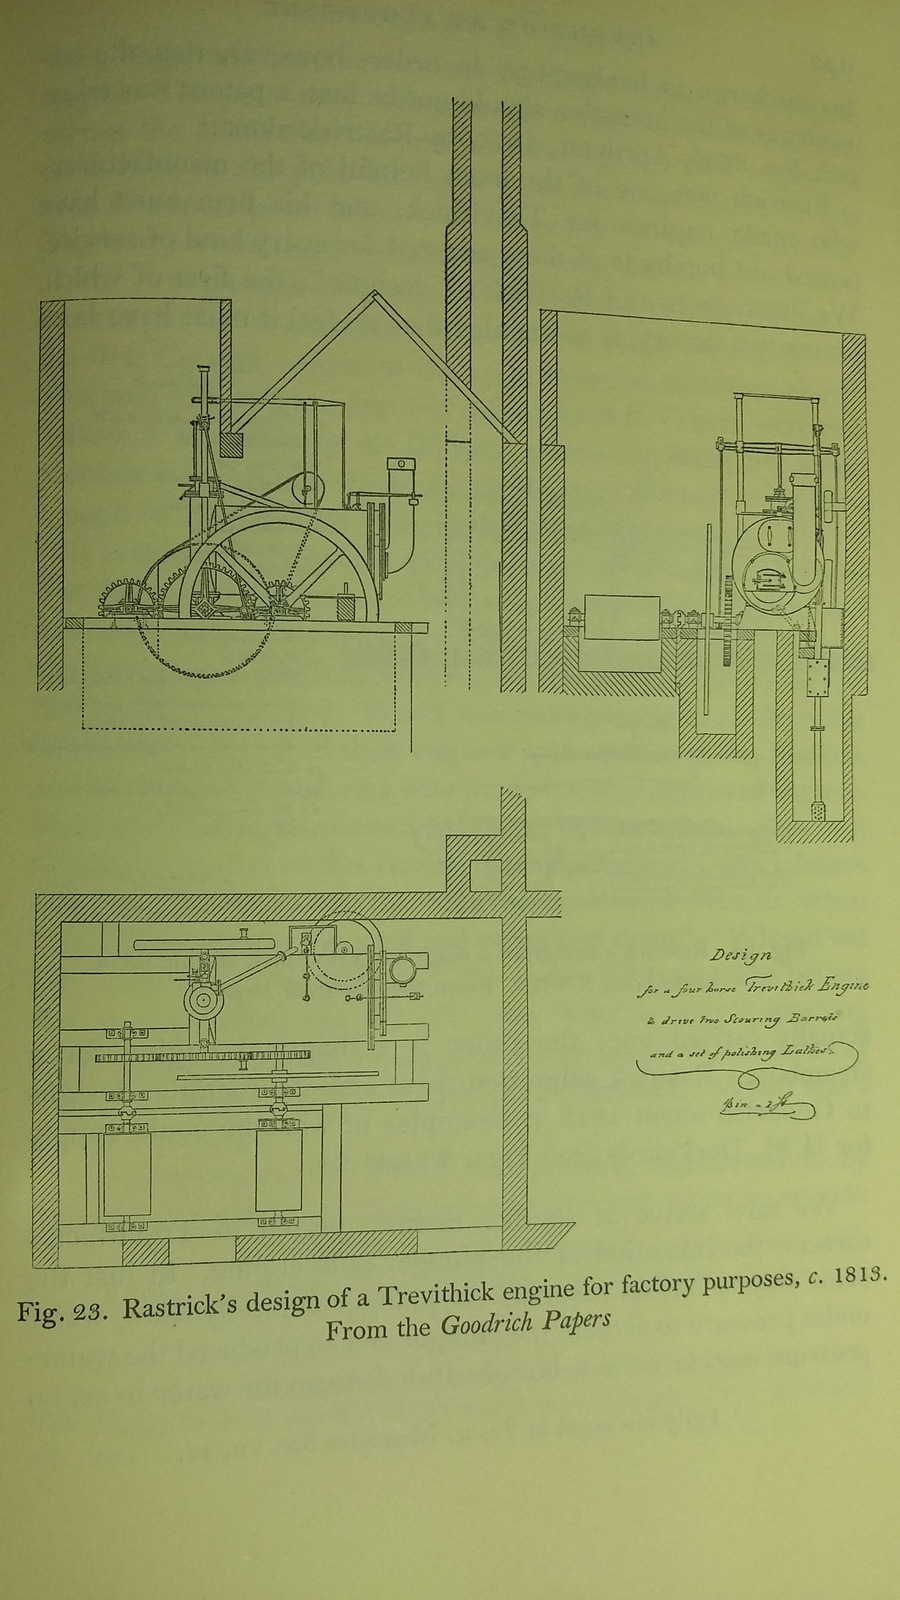 Picture 3: Rastrick's design of a Trevithick engine for factory purposes, c. 1813